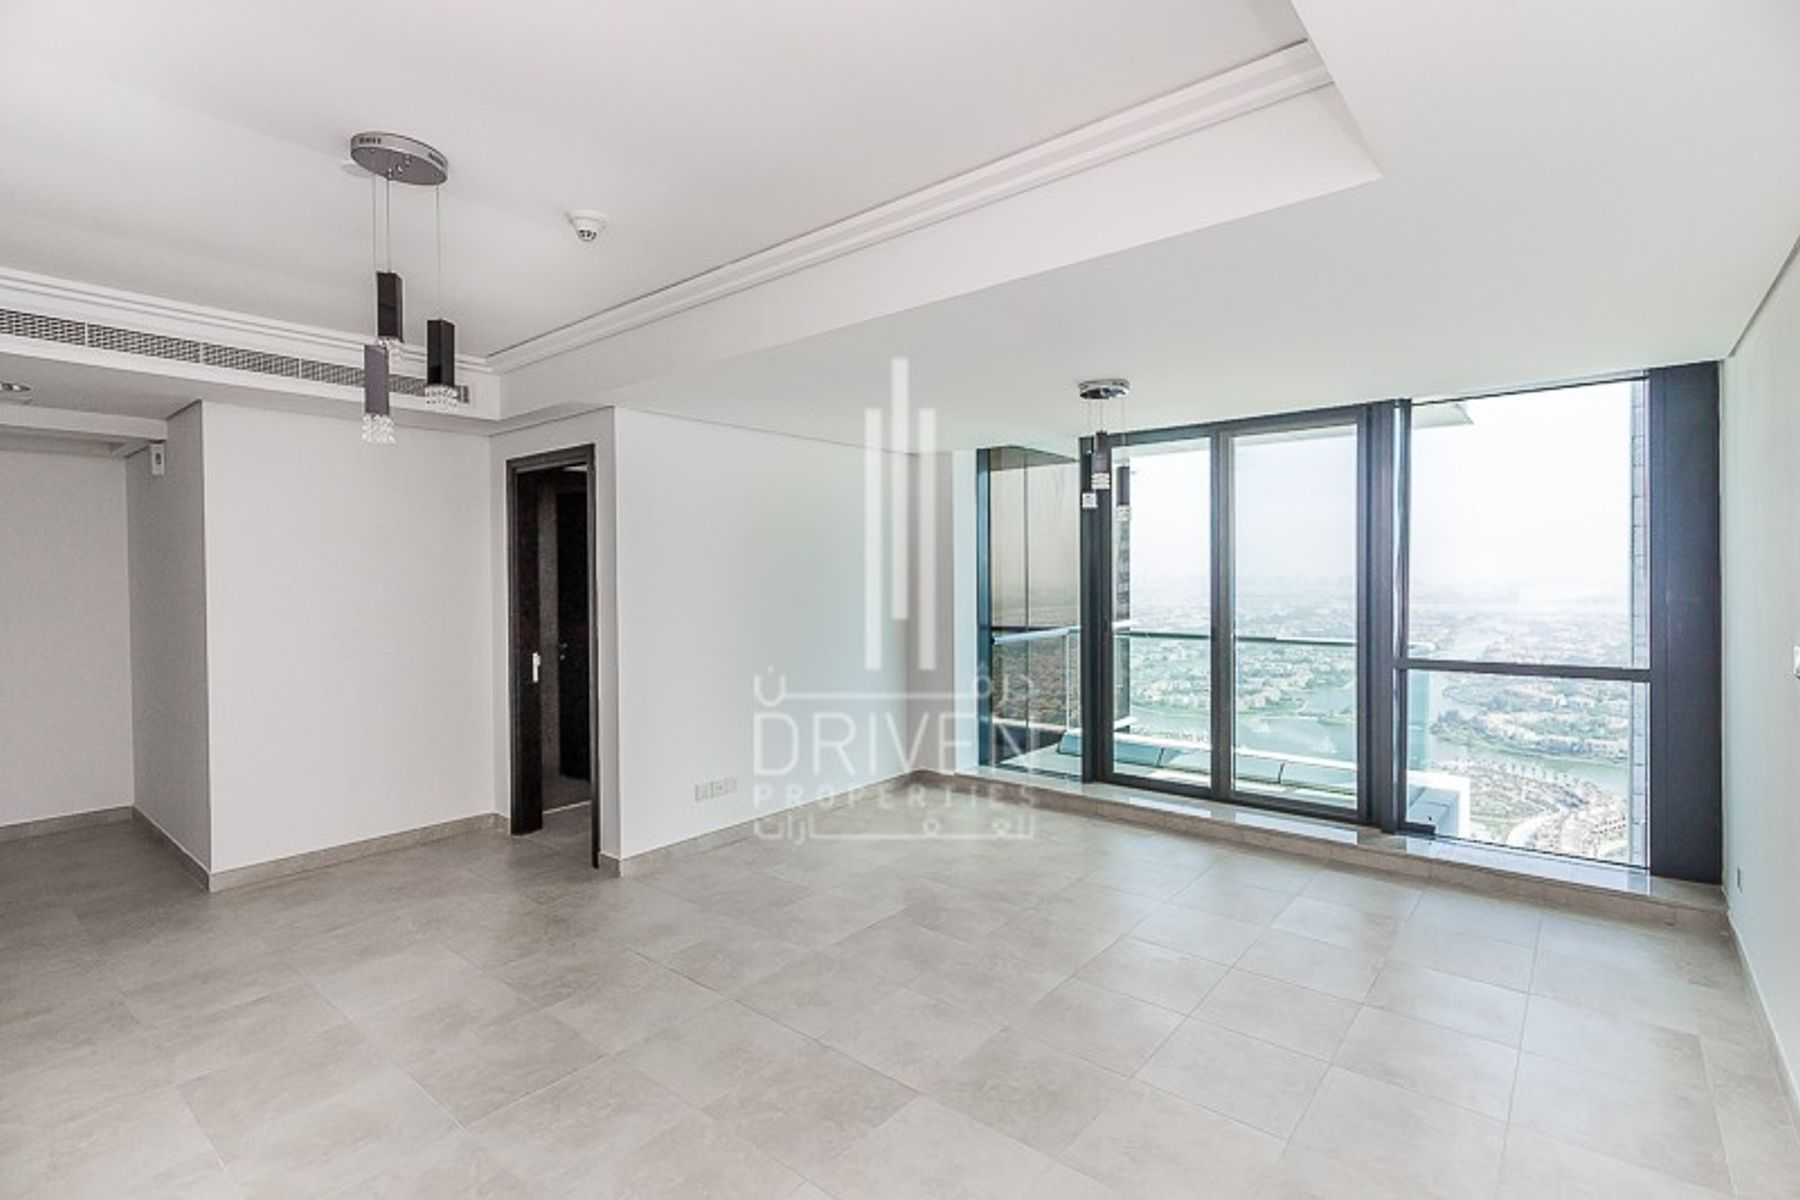 Best Deal 2 Bedroom Apt | High Floor Level